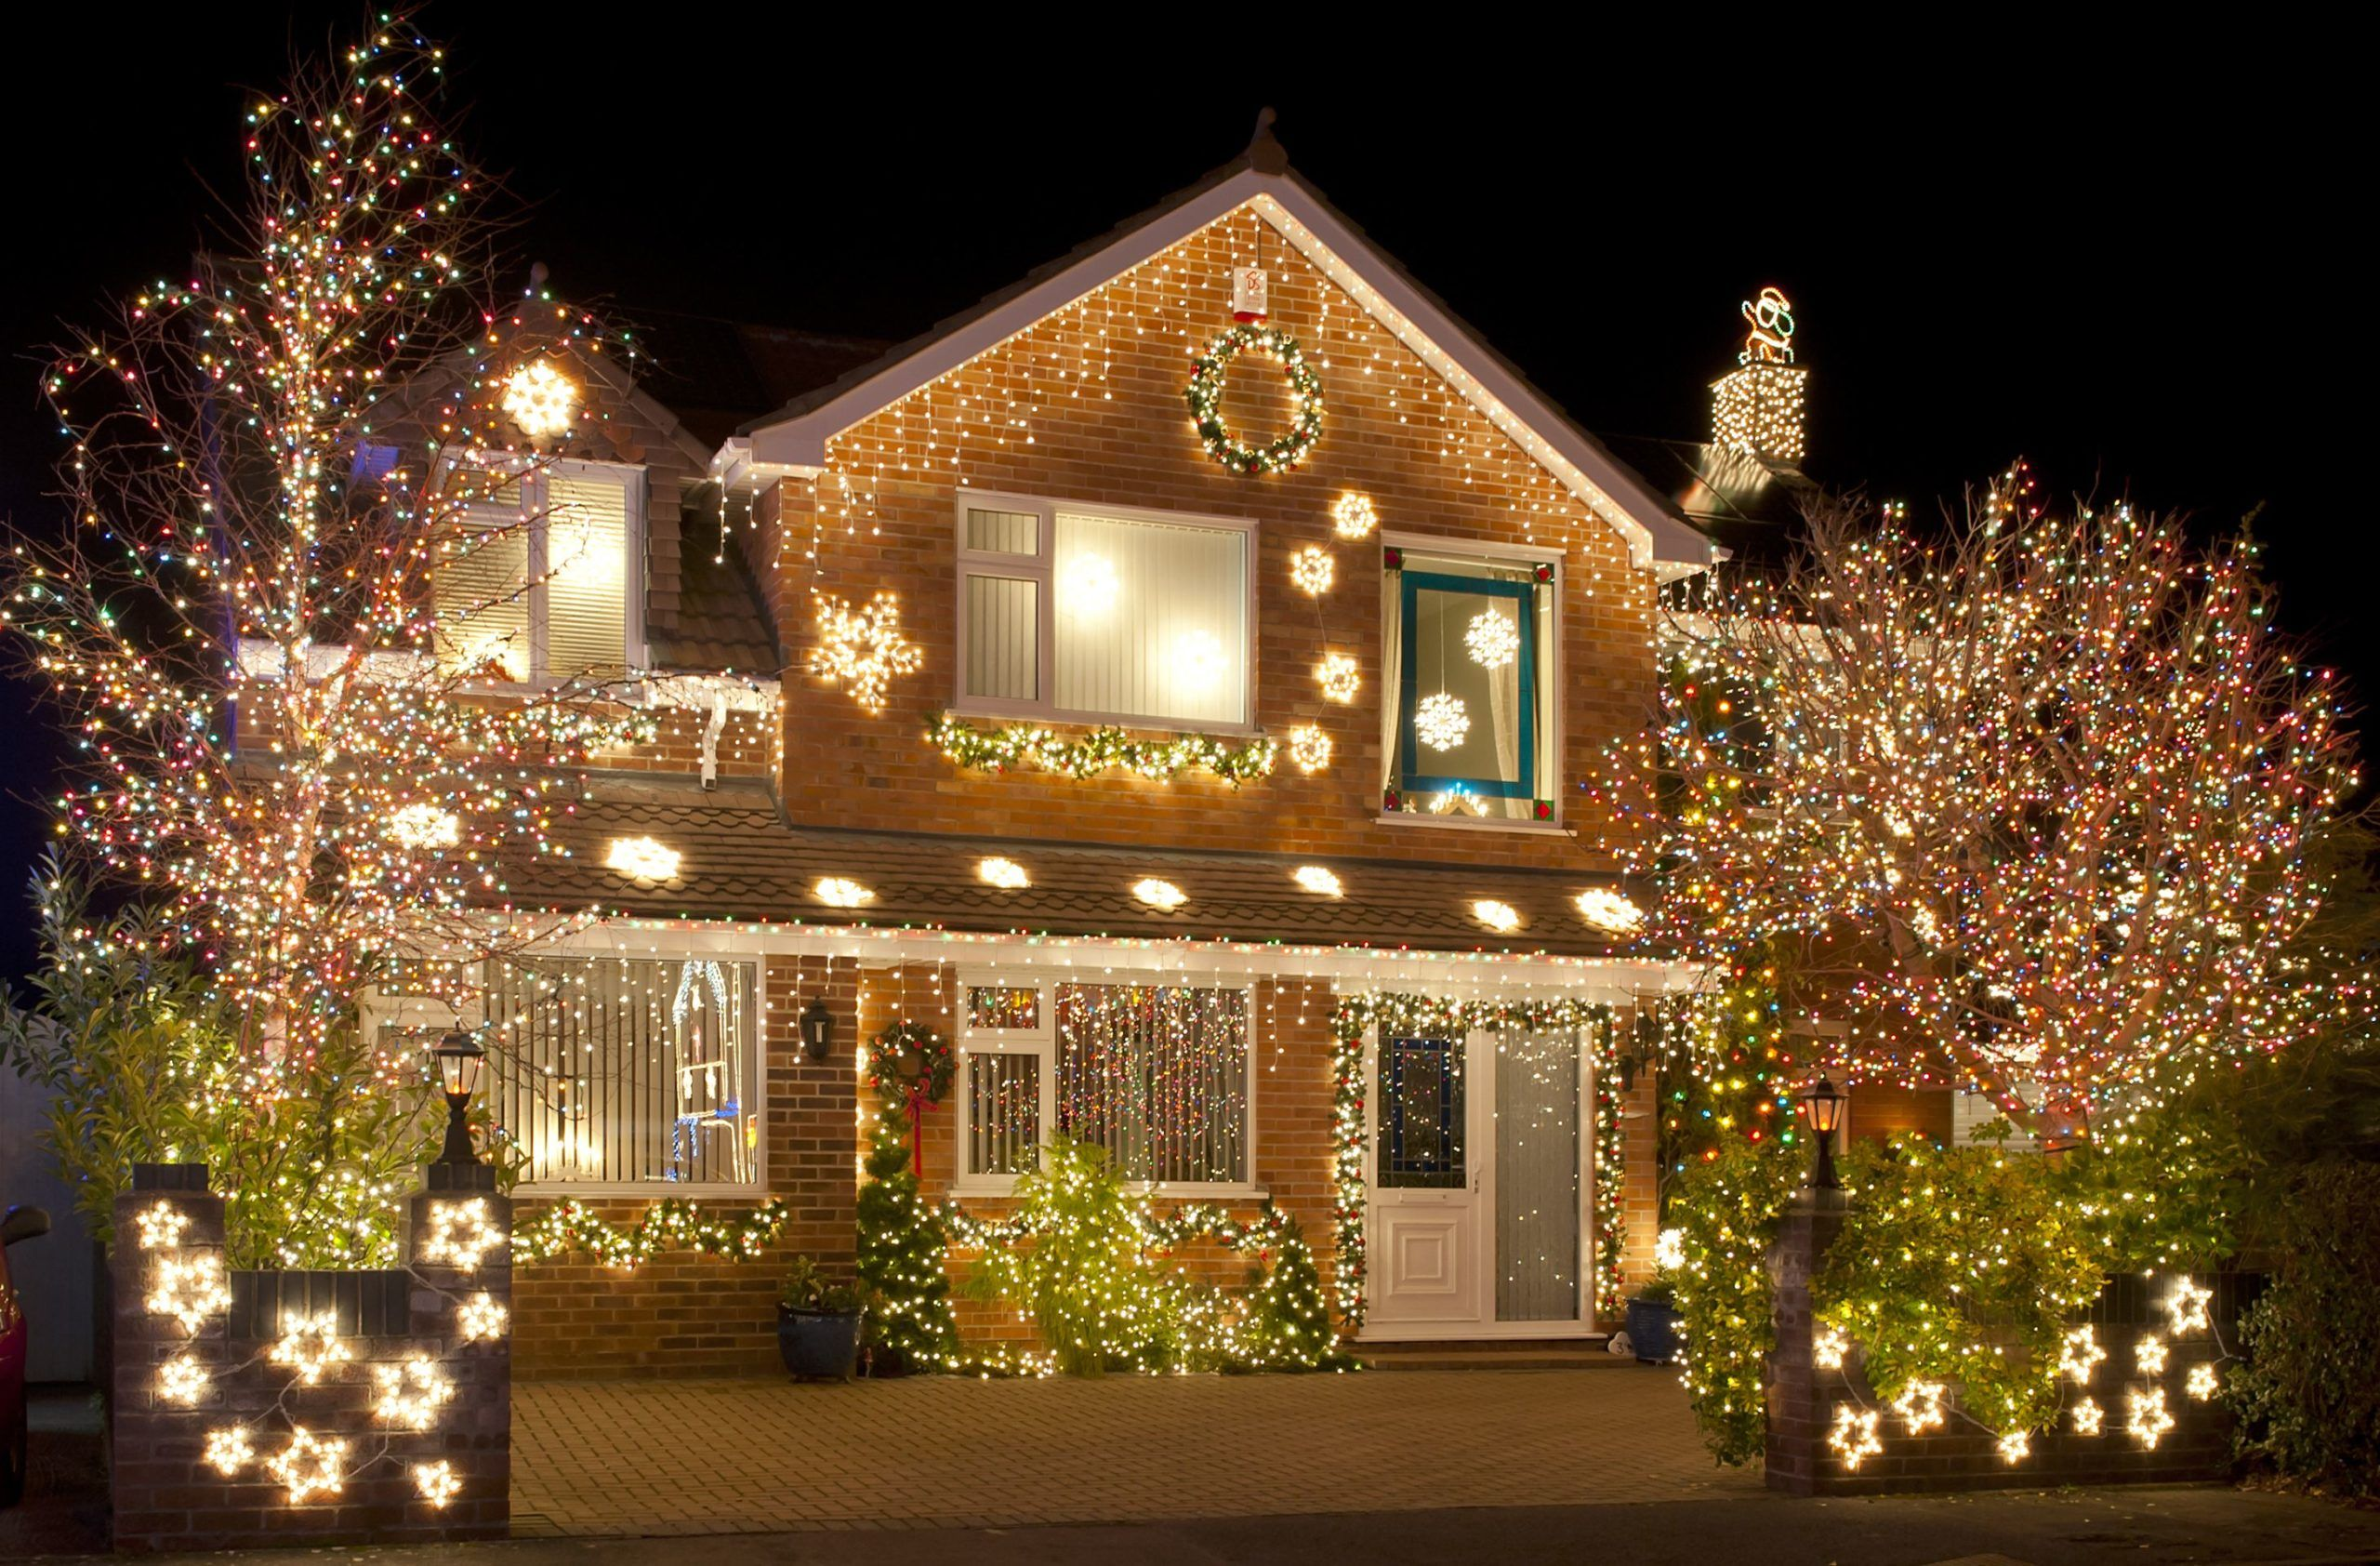 New Article On The Blog How To Set Up Decorative Lights On Your Roof The Best Way In 2020 Christmas Lights Decorating With Christmas Lights Christmas Lights Outside